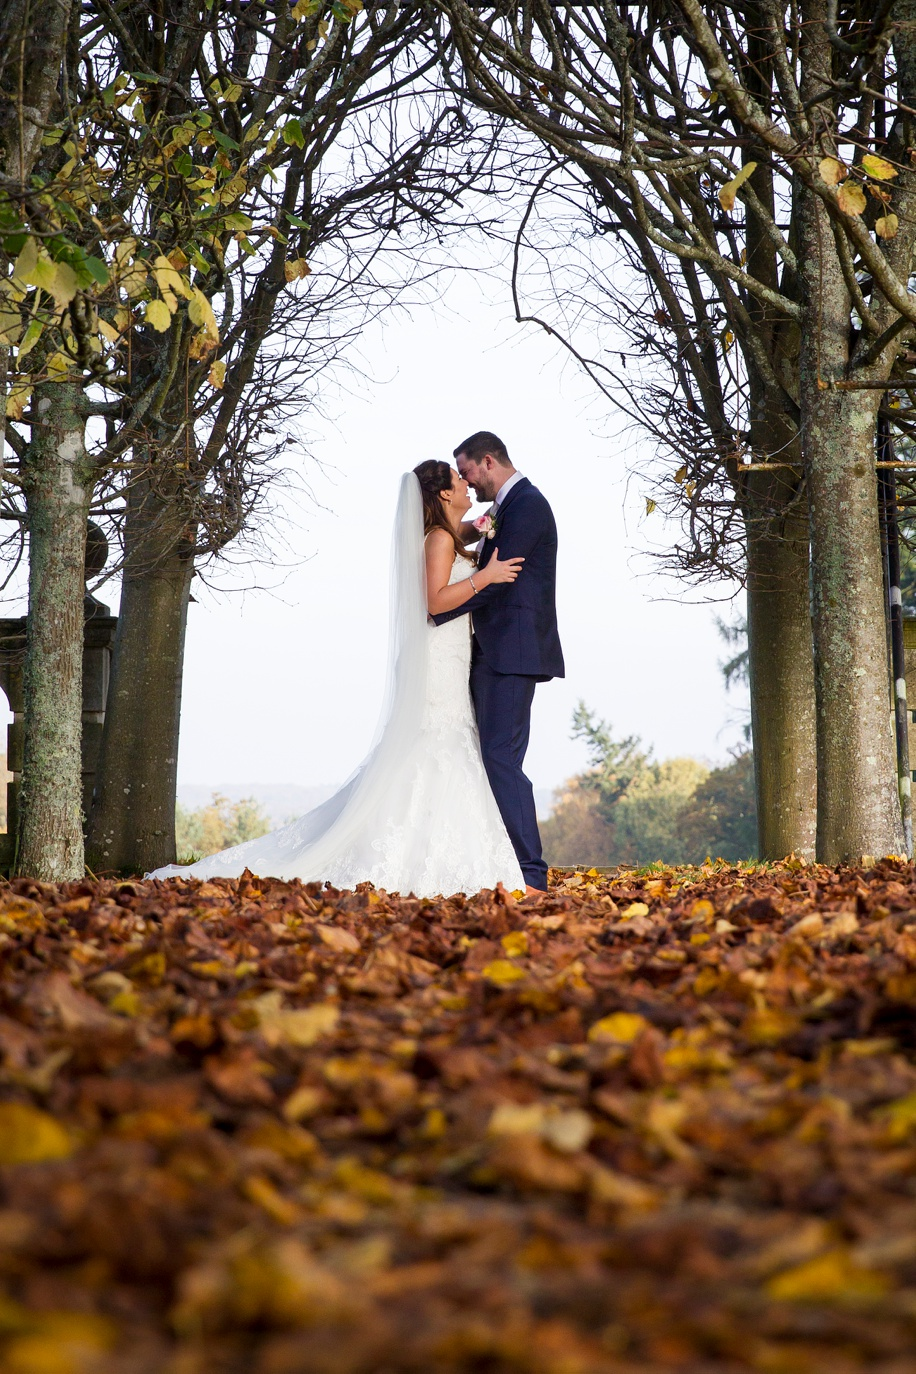 Autumn wedding photographs at Rhinefield House in the New Forest by Hampshire wedding photographer - Martin Bell Photography